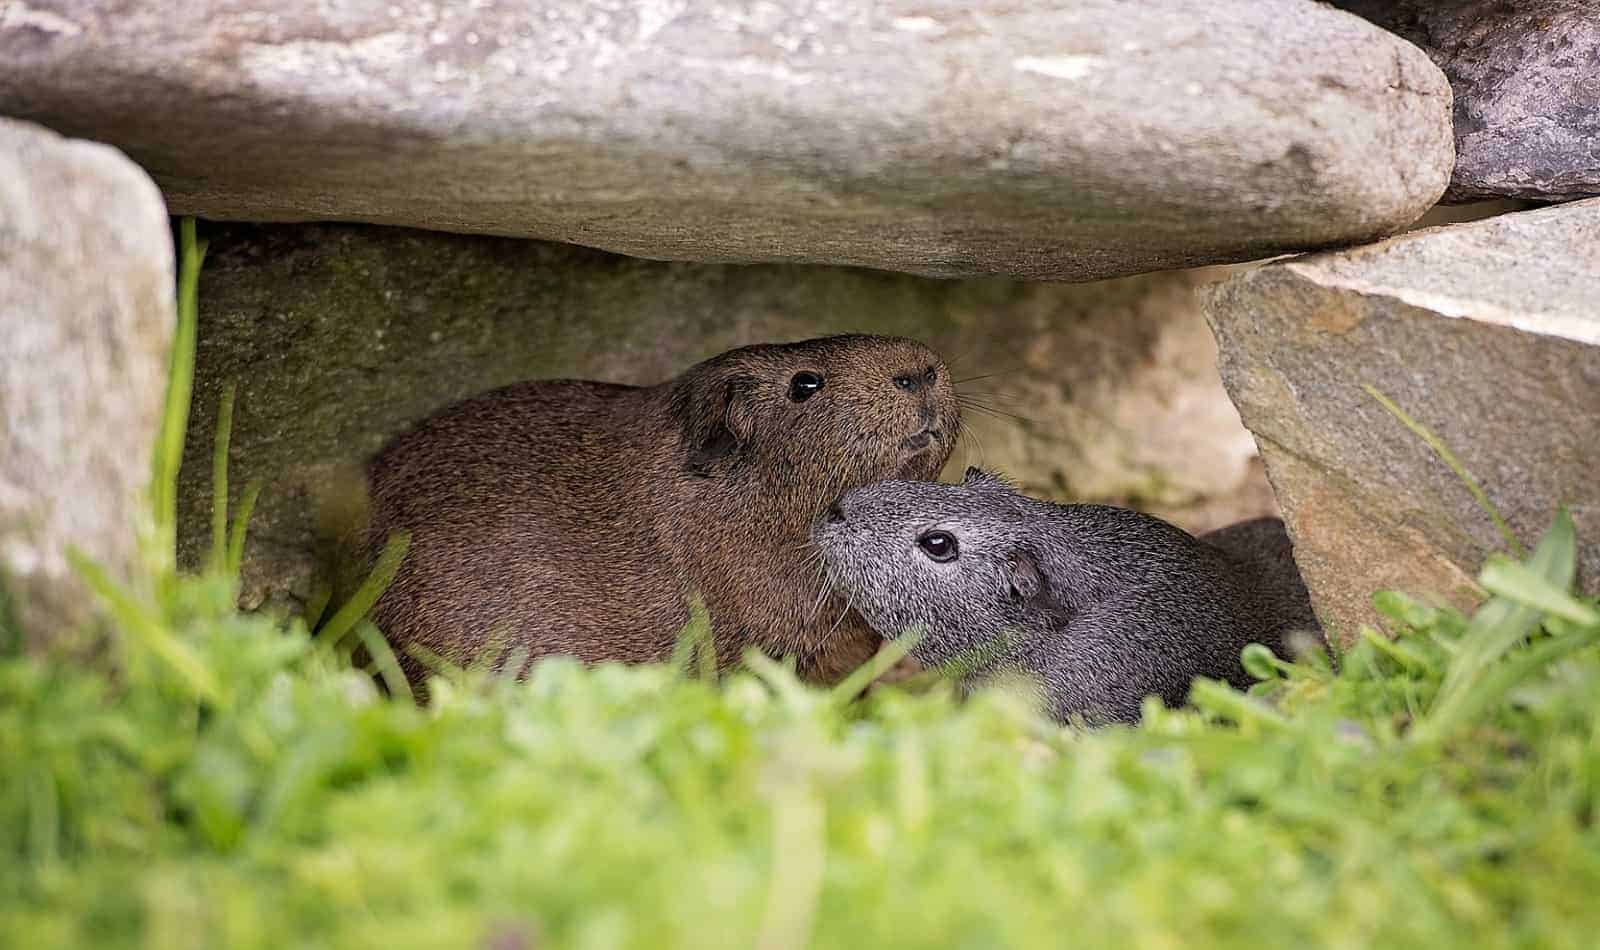 two gray guinea pigs surrounded by rocks